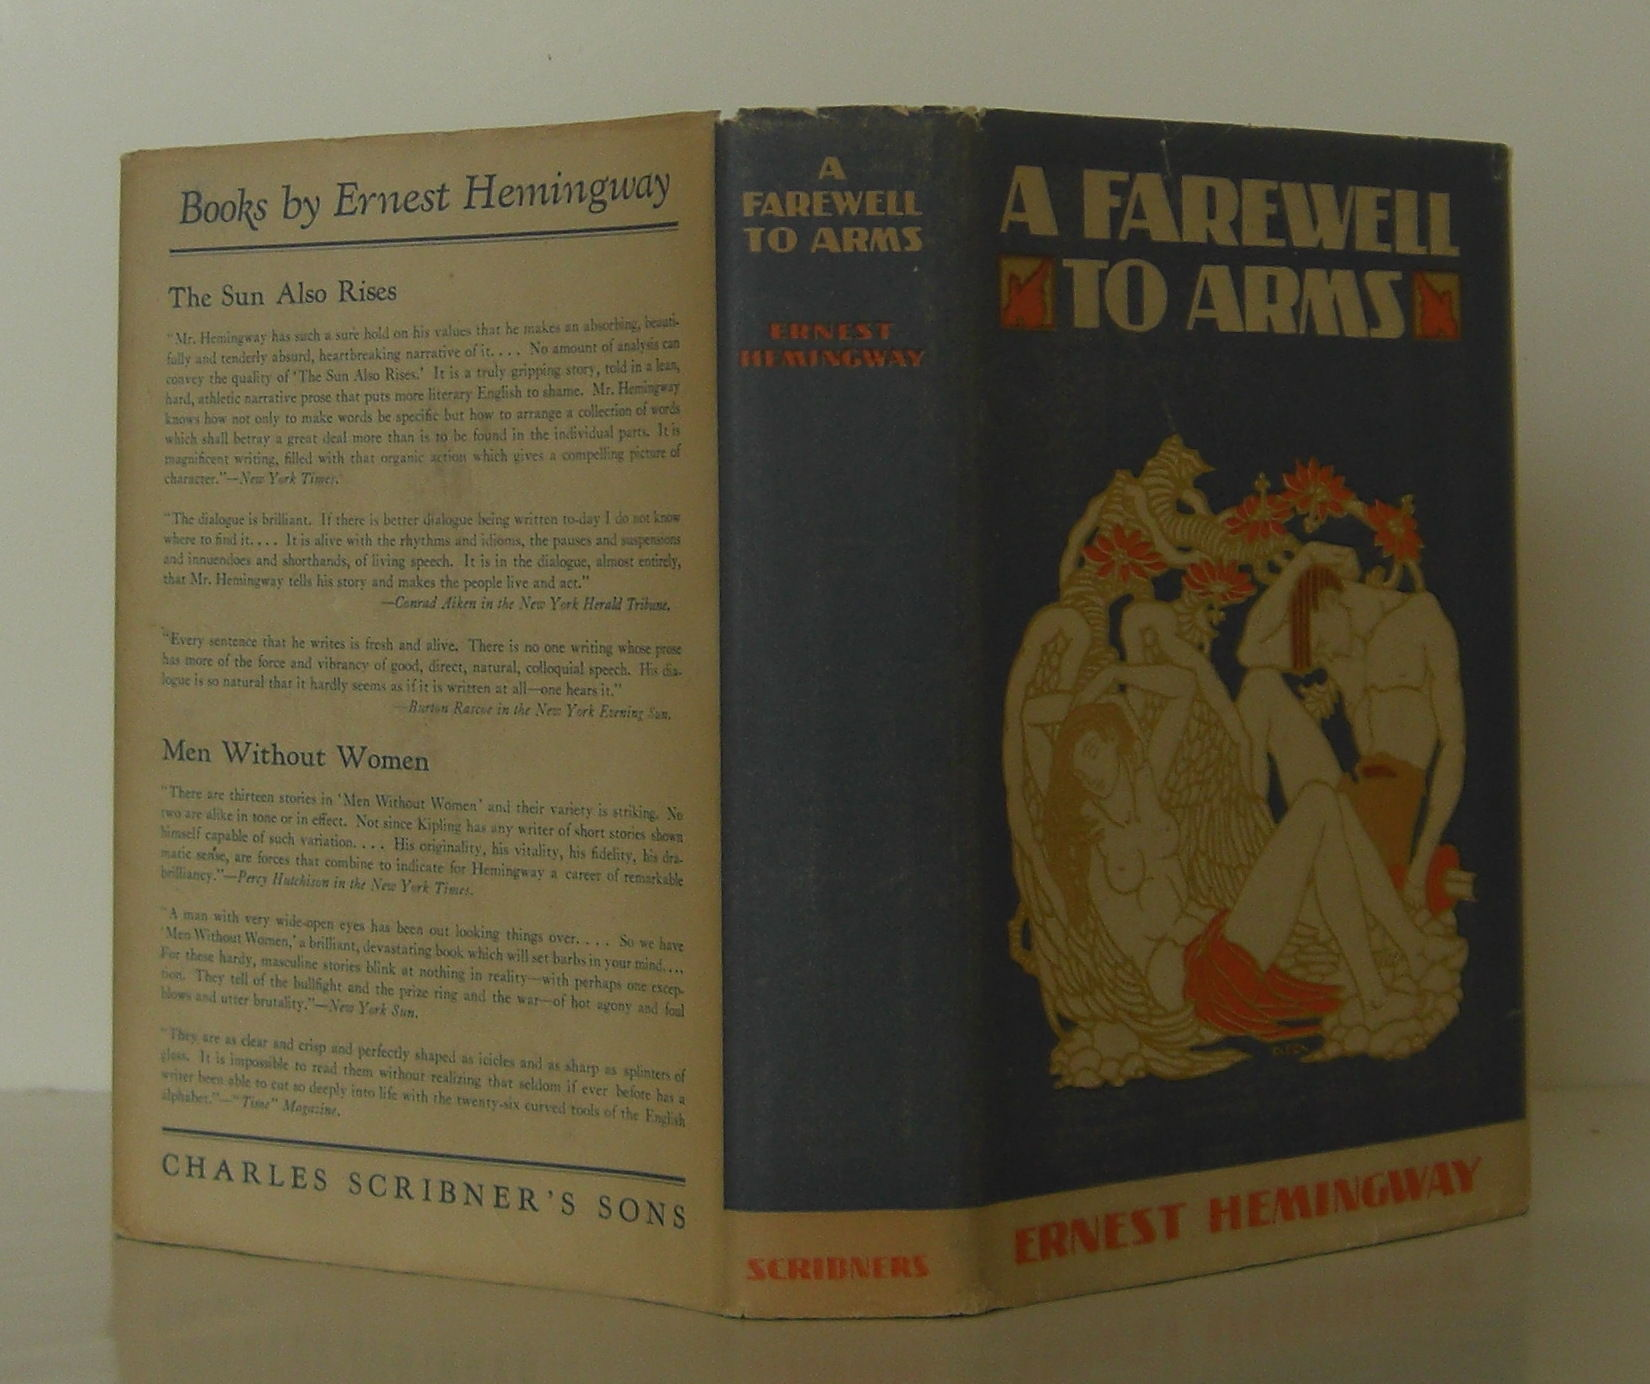 an analysis of war and love in ernest hemingways a farewell to arms Ernest hemingway's third novel, a farewell to arms (1929), was crafted from his earliest experience with war as a teenager just out of high school, hemingway volunteered to fight in the first world war but was rejected because of poor eyesight.